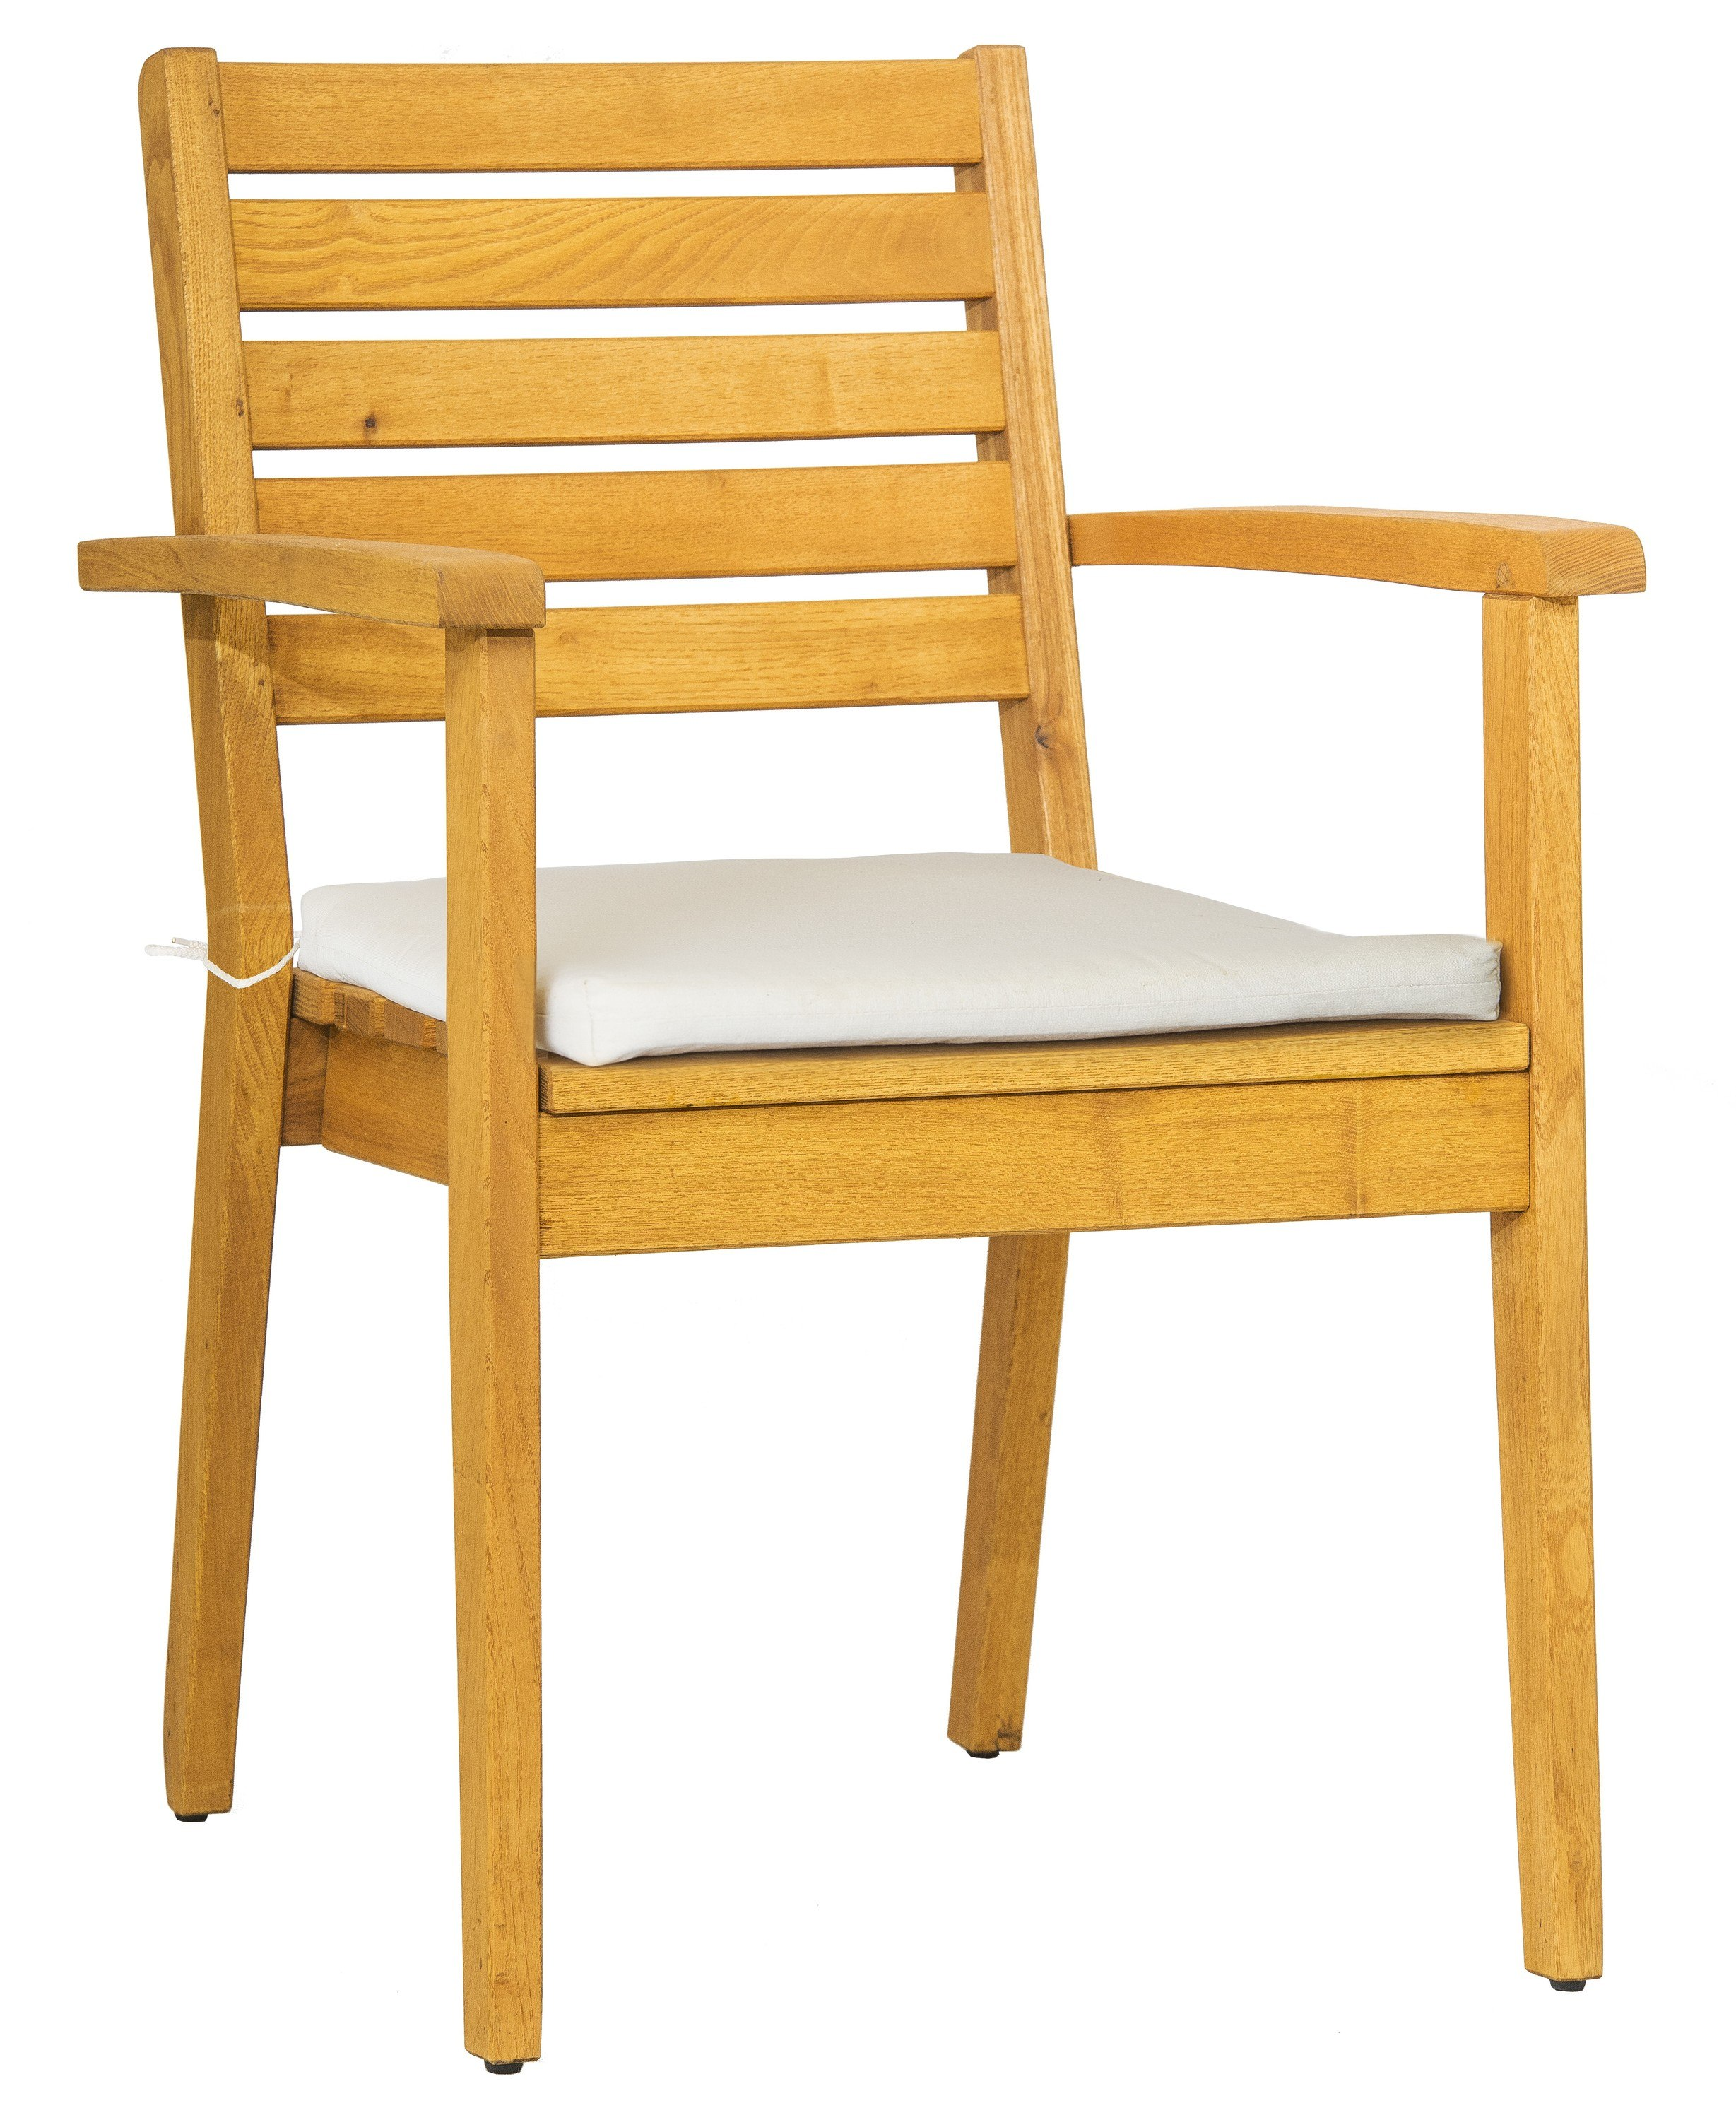 <p>Outdoor Furniture Wooden Dining Collection Cairo.</p> <p> </p> <p>Stackable Armchair.</p> <p> </p> <p>Cairo Furniture – Stackable armchair for easy storage.</p> <p> </p> <p>Ideally suited as beer garden furniture as well as terrace furniture in a stylish hotel, bar or restaurant setting. Cushions available</p>